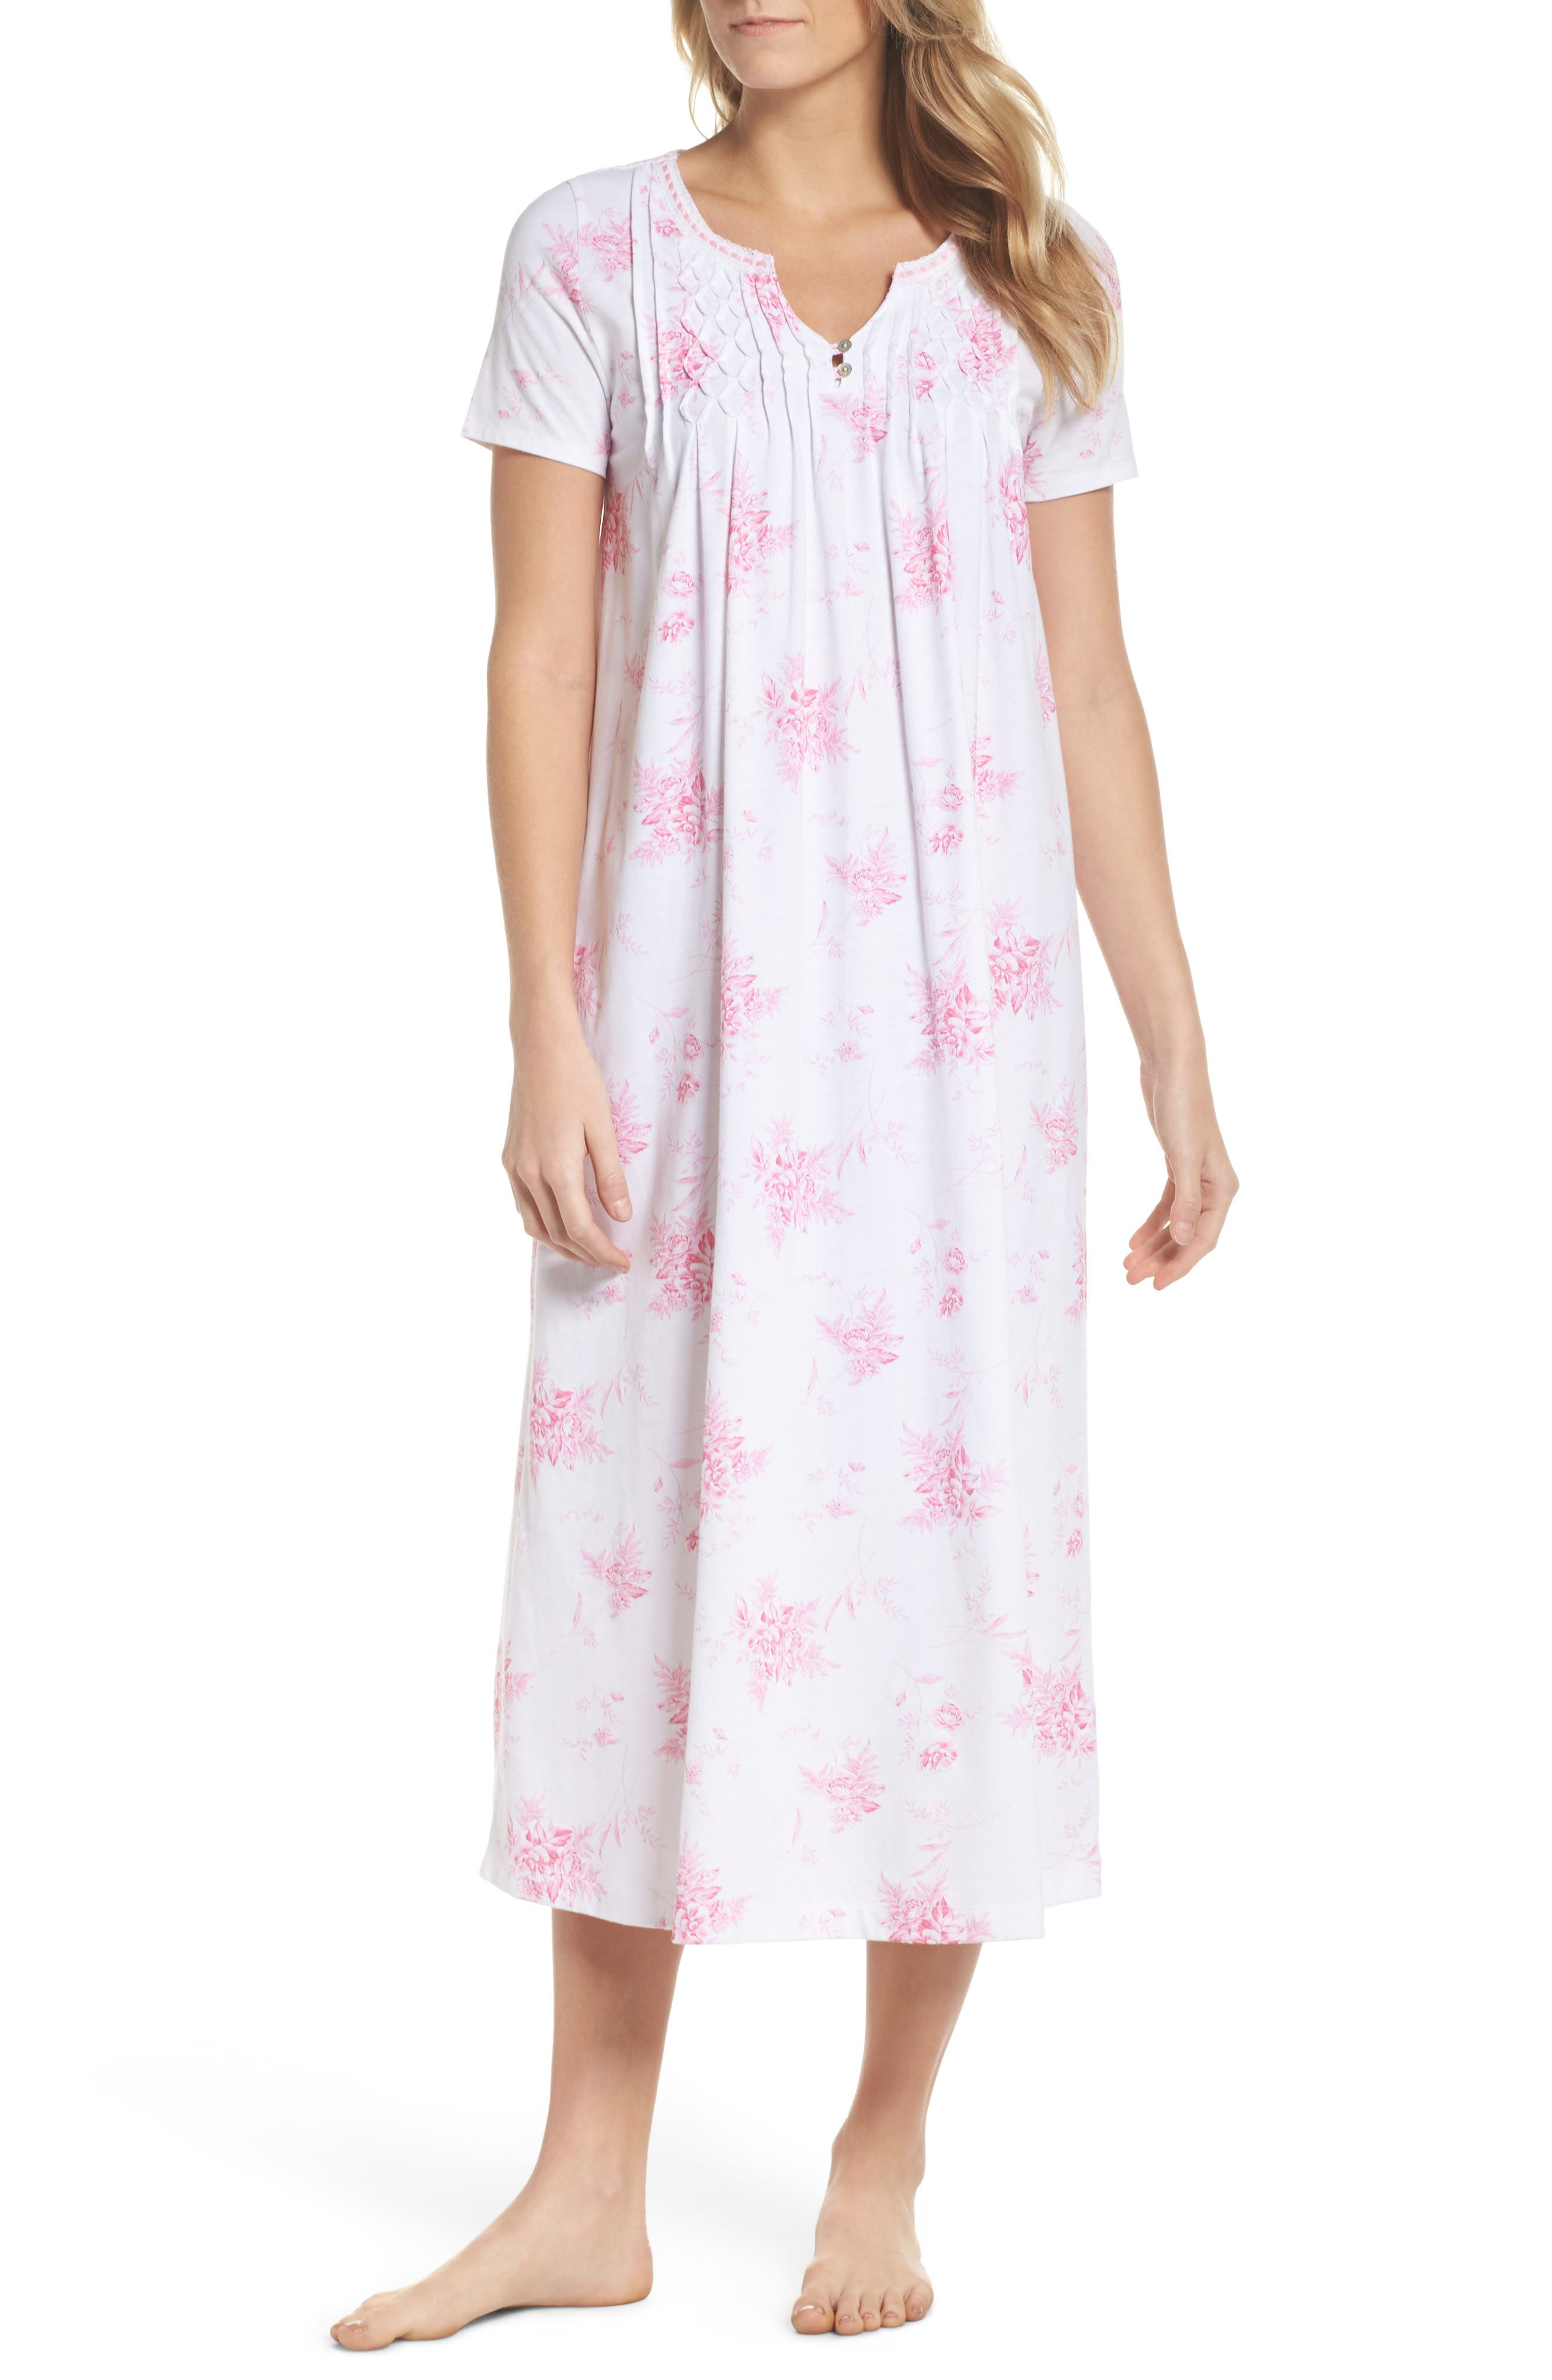 Cotton Jersey Long Nightgown,                             Main thumbnail 1, color,                             102